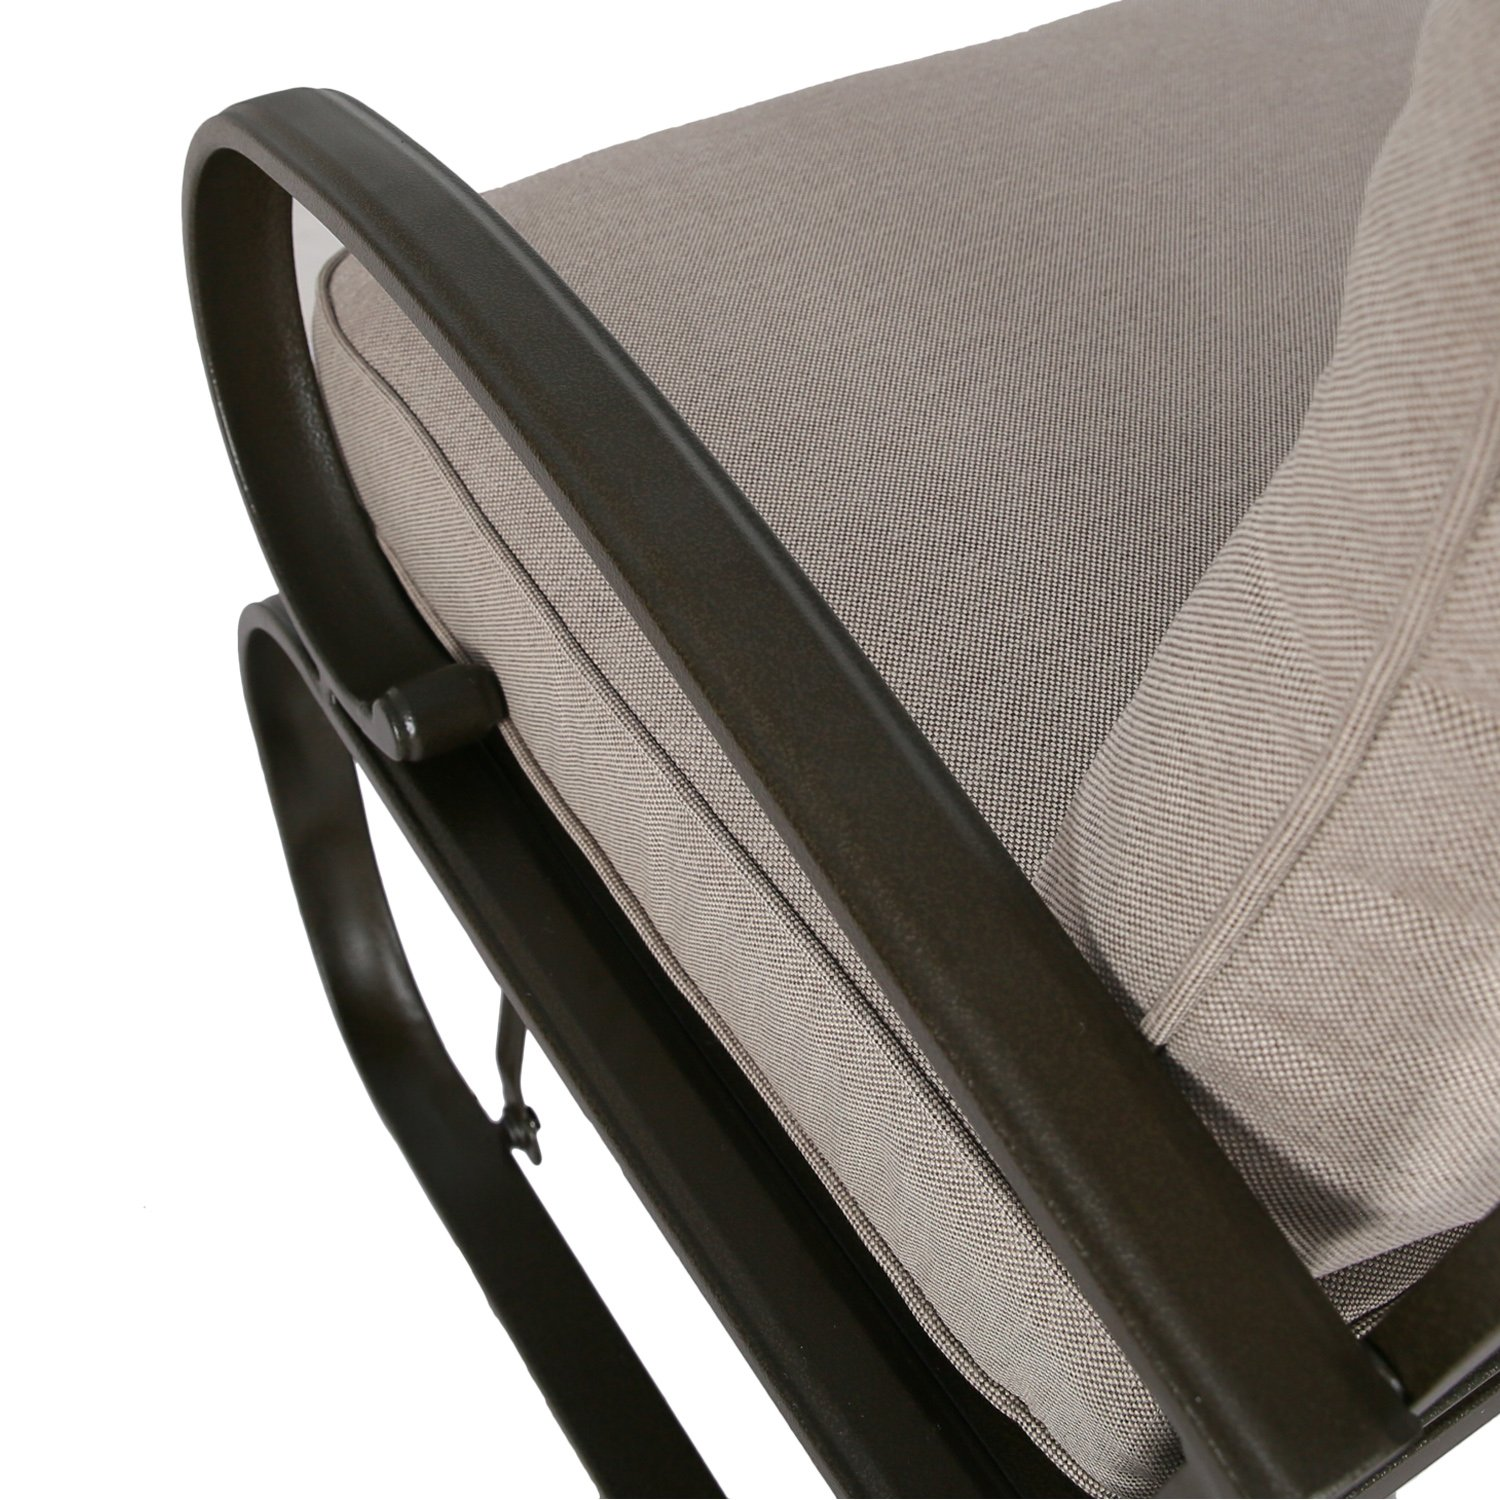 patio swing glider bench outdoor cushioed 2 person rocking chair